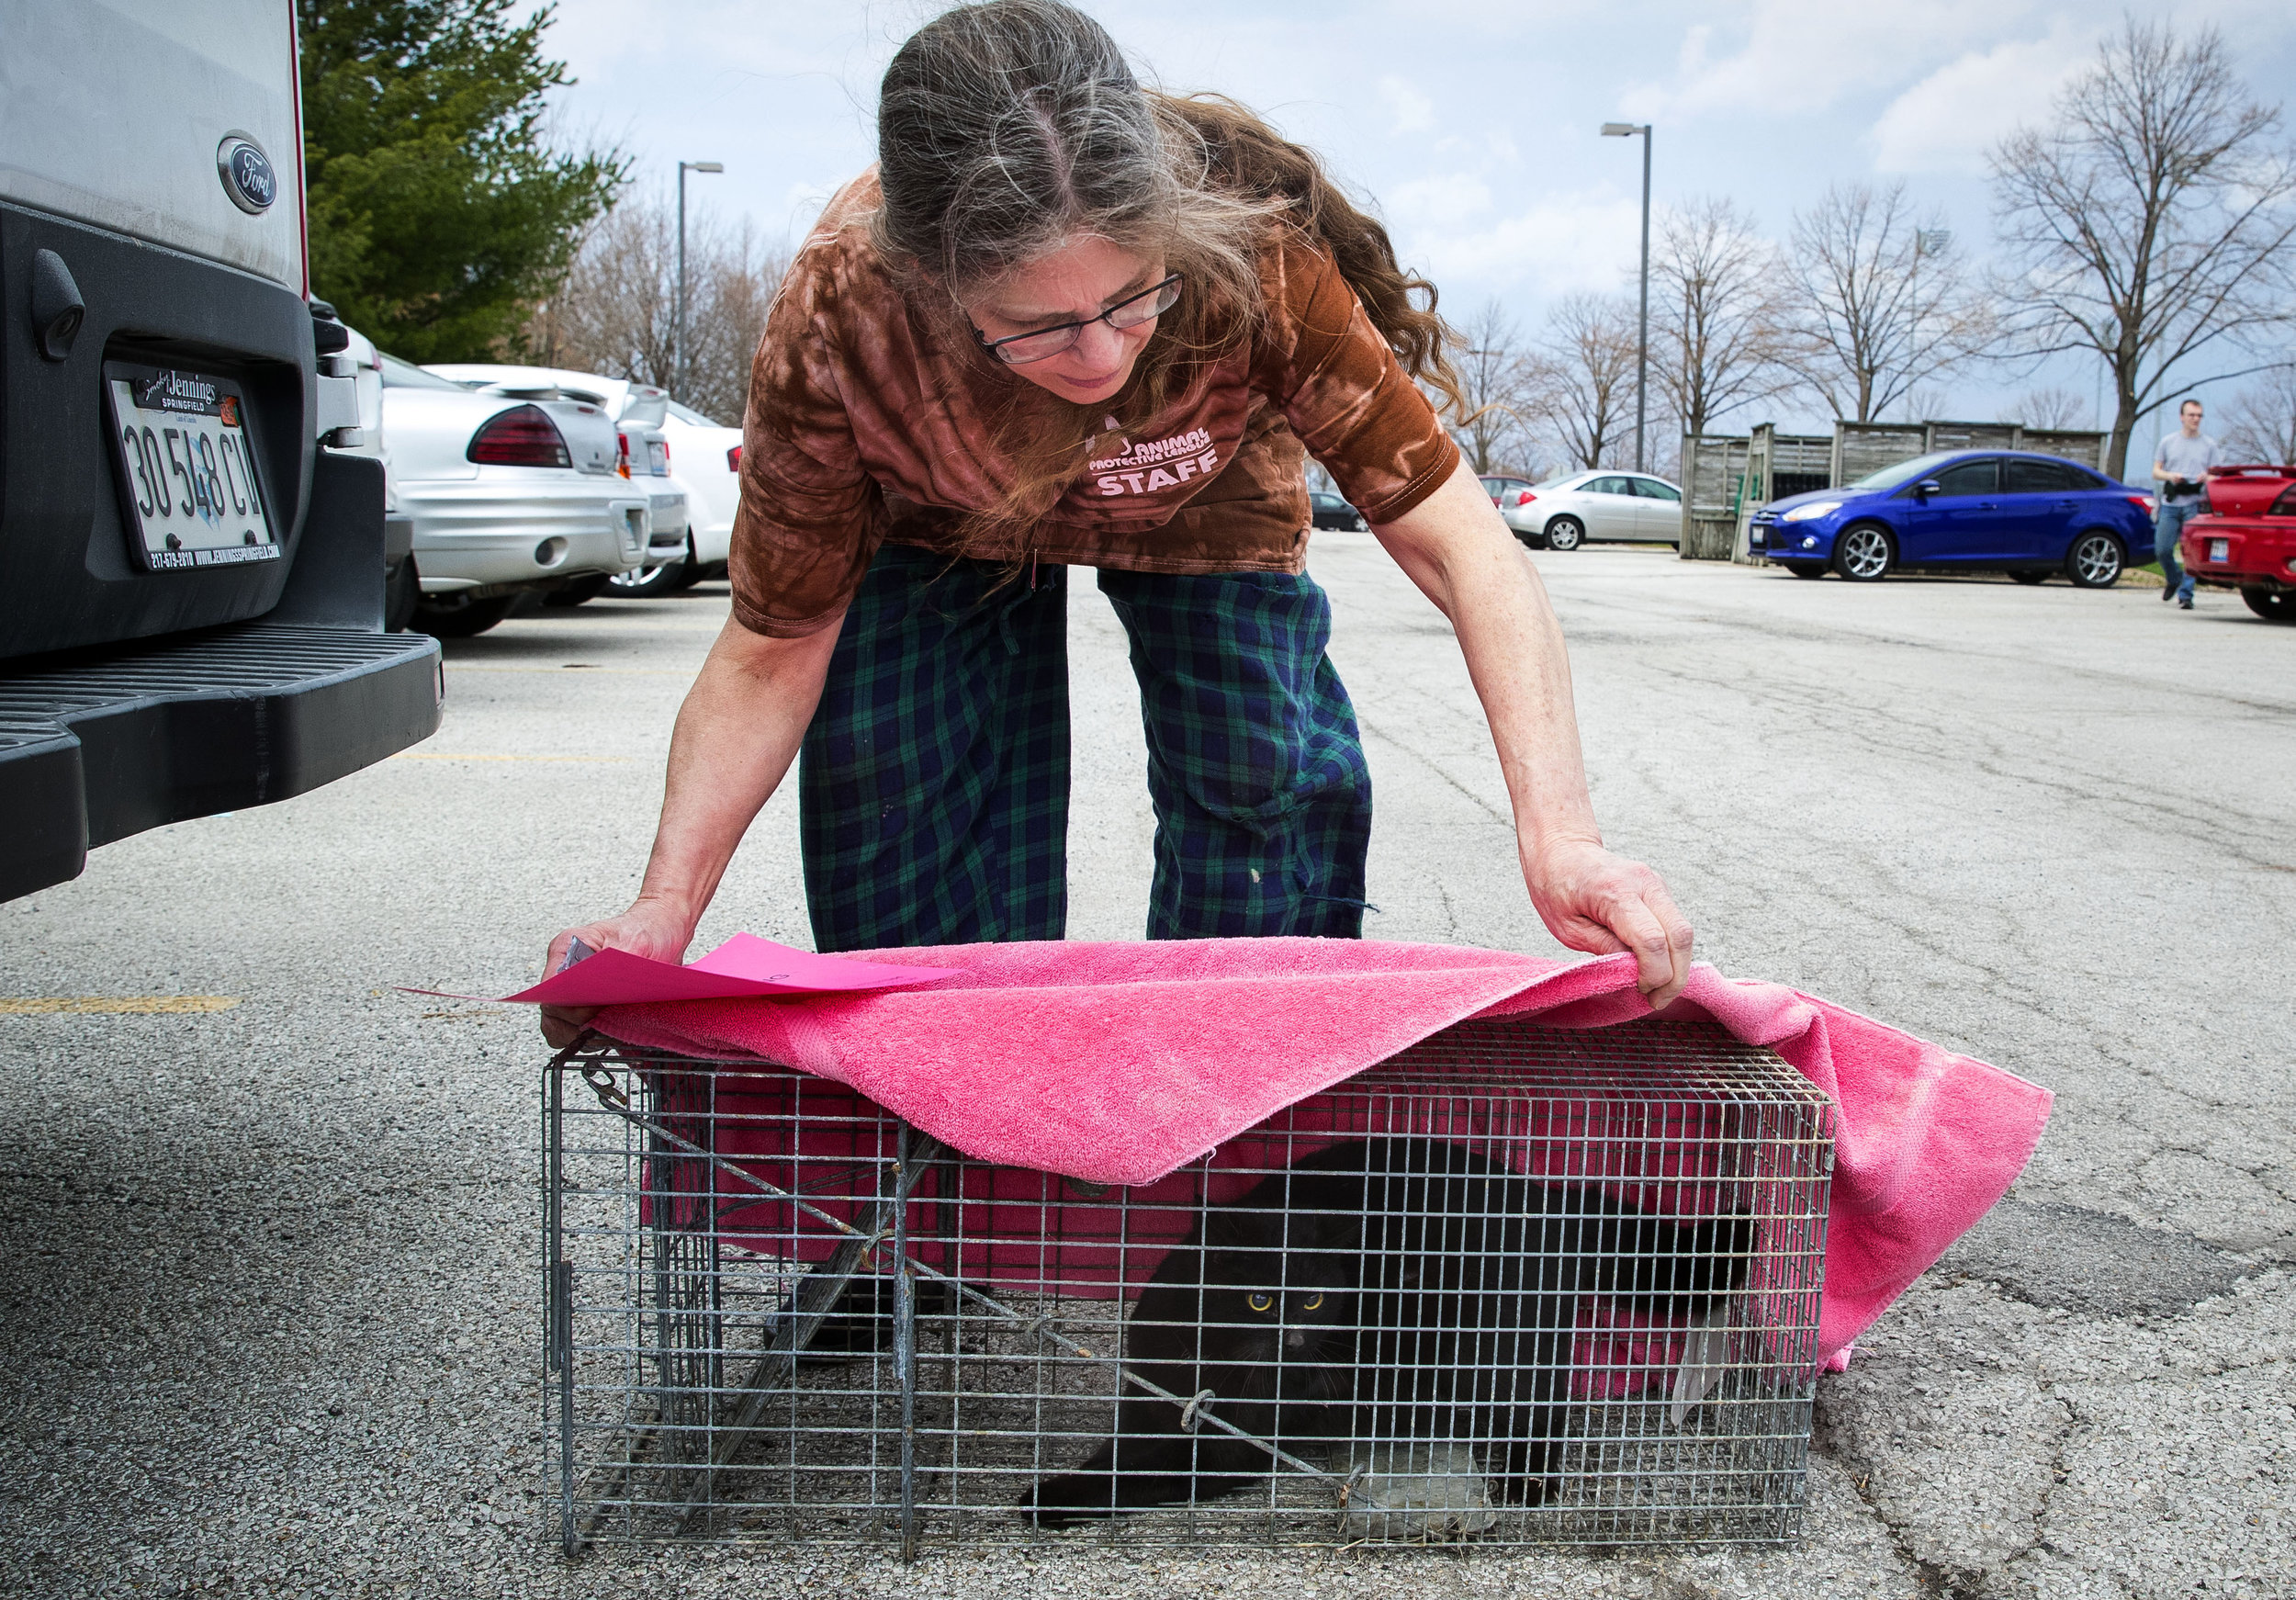 Teri Kidd prepares to load a feral cat into her van after trapping it on the campus of the University of Illinois Springfield Friday, April 13, 2018. The cat will be taken to Animal Protective League in Springfield where it will undergo a ovariohysterectomy and returned to the exact location where she was caught. In addition to the Trap-Neuter-Return program, APL also has a barn cat adoption program that offers feral cats that are brought to the shelter to owners of barns, garages, warehouses, and other settings better suited to unsocialized cats. [Ted Schurter/The State Journal-Register]